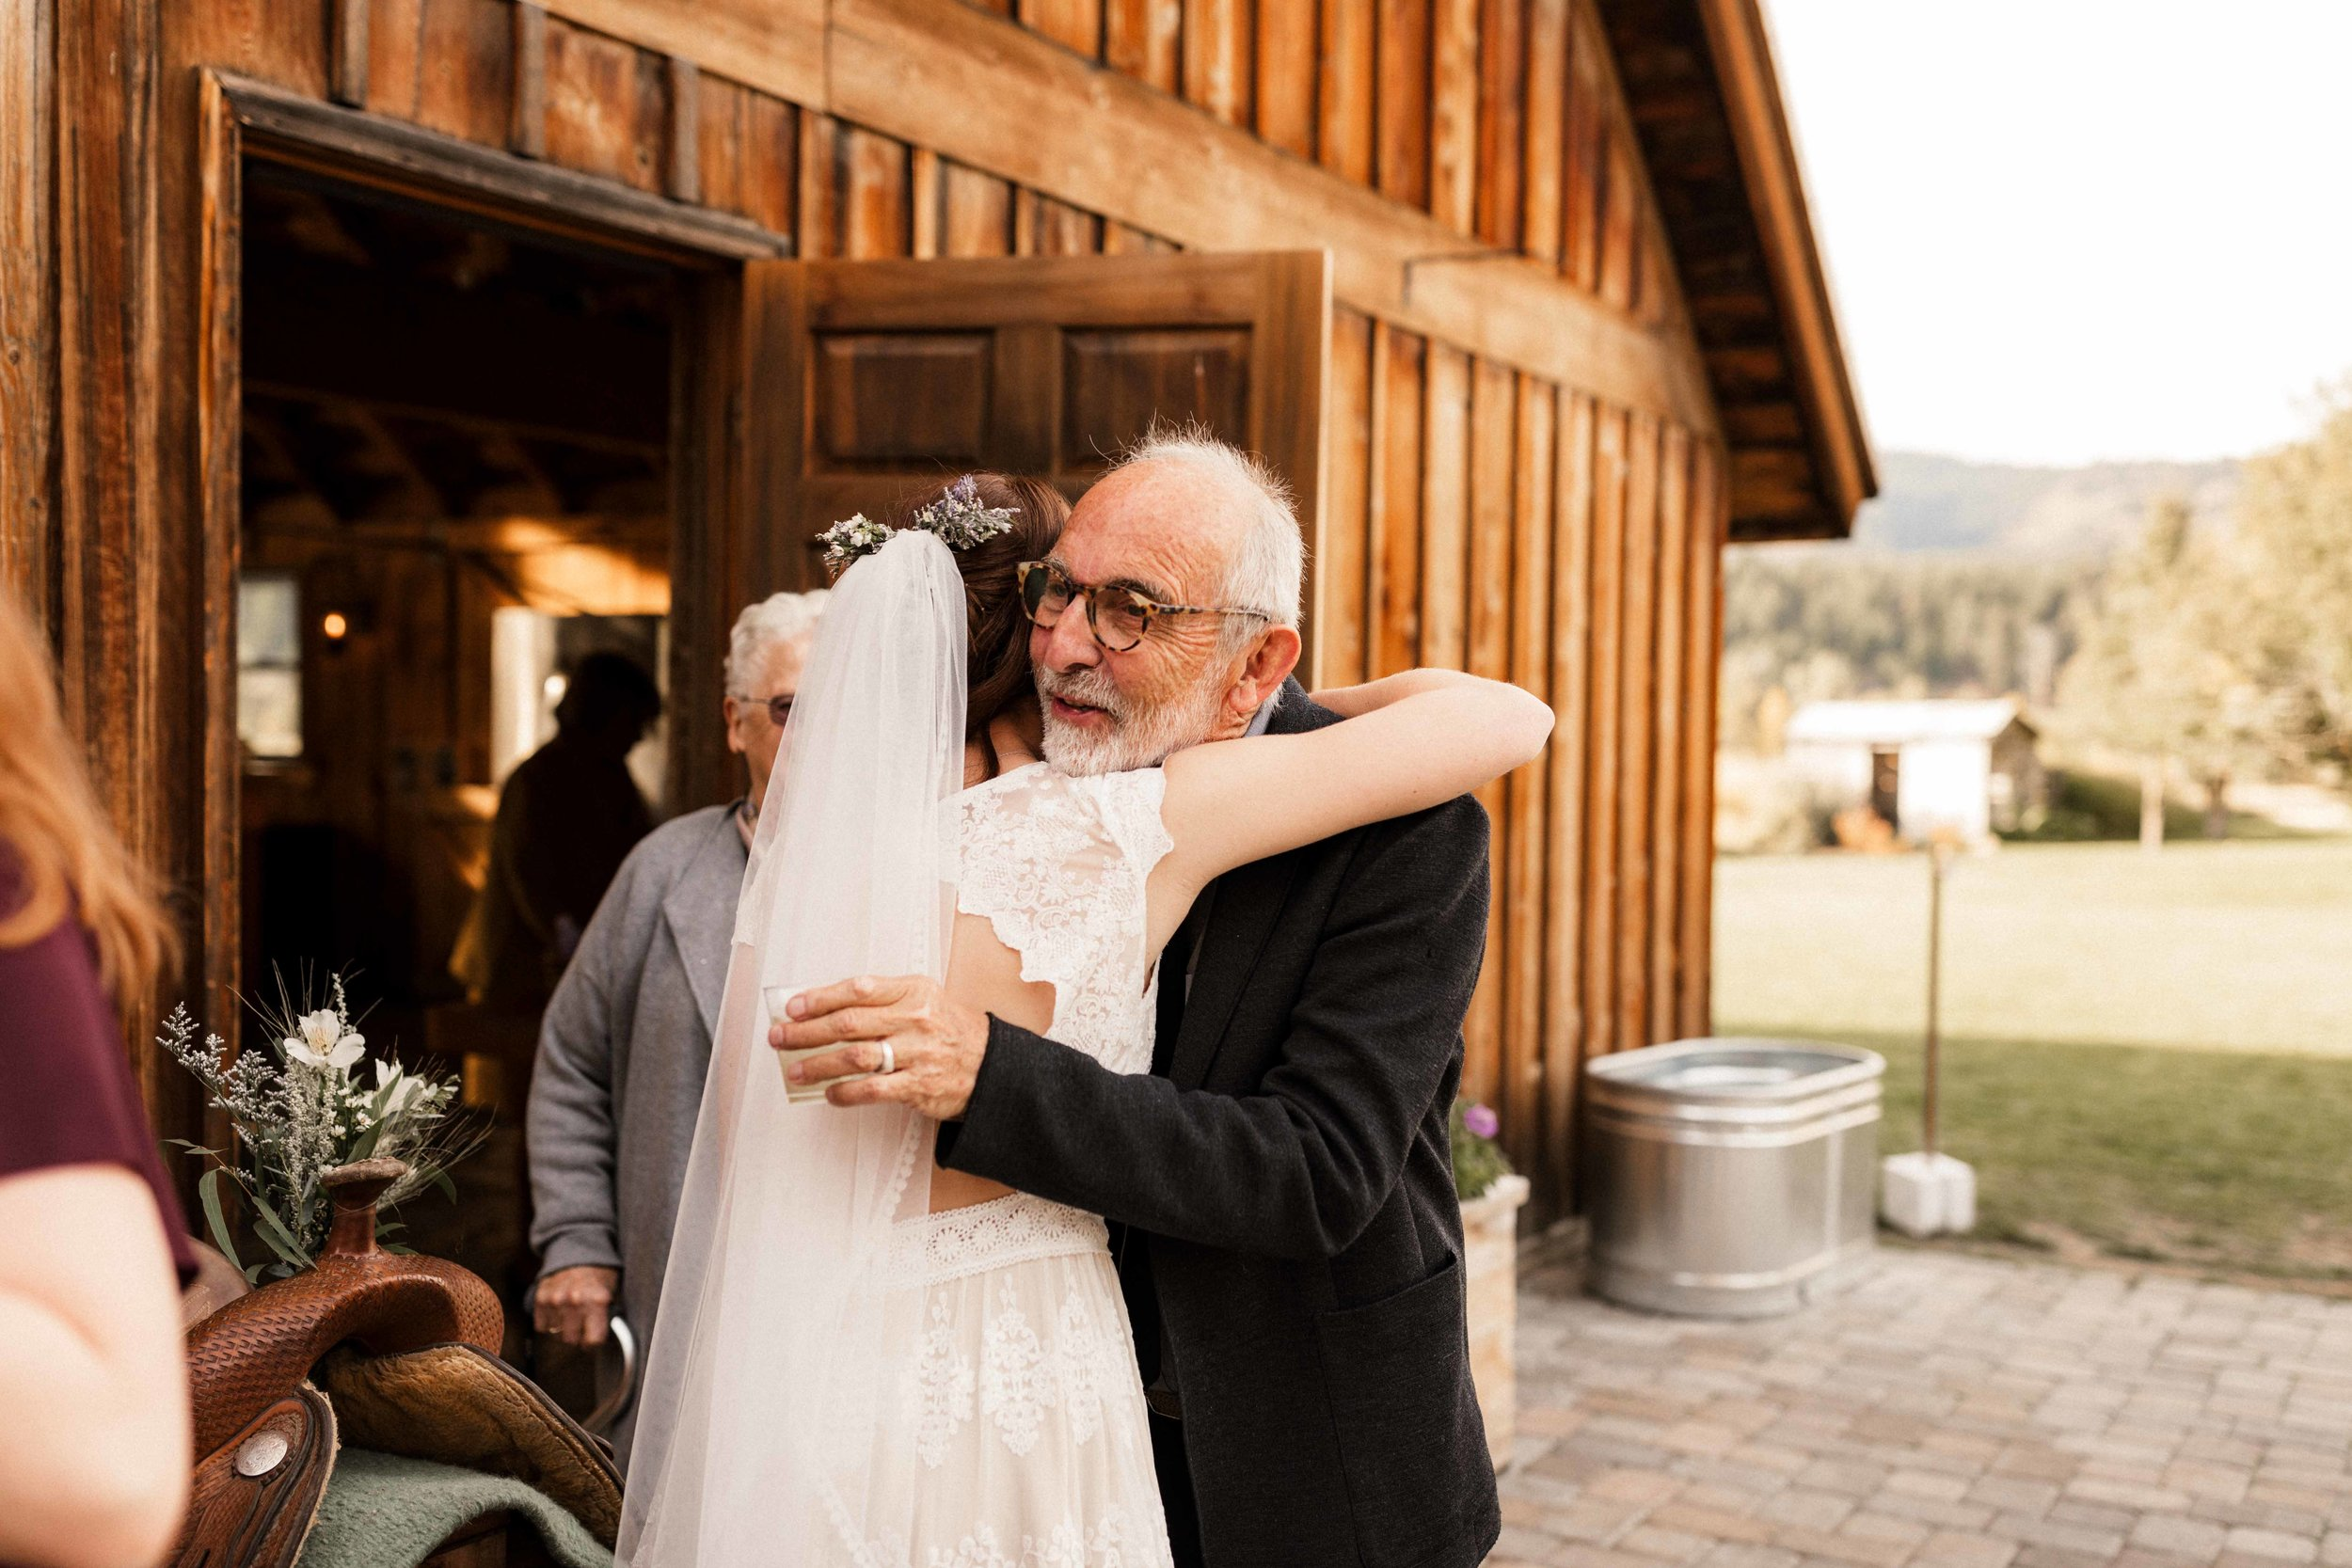 the-cattle-barn-wedding-51.jpg